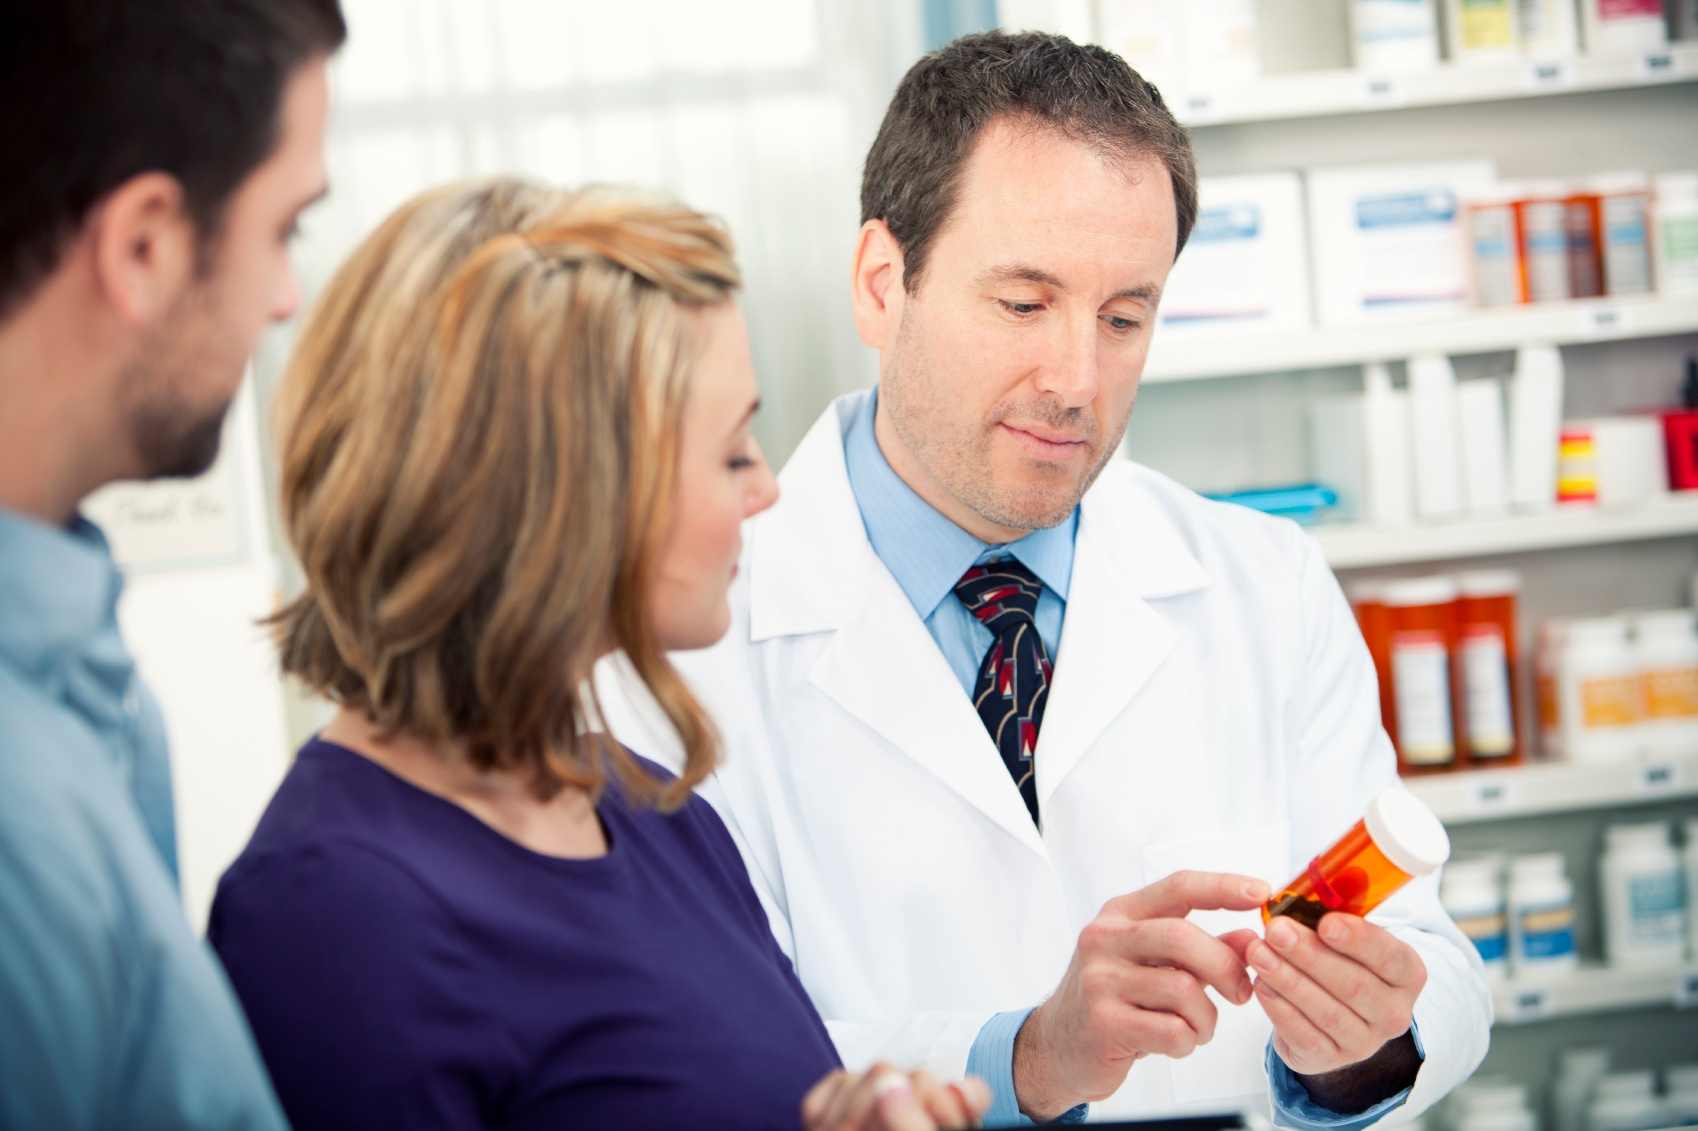 Common Questions to Ask Your Pharmacist